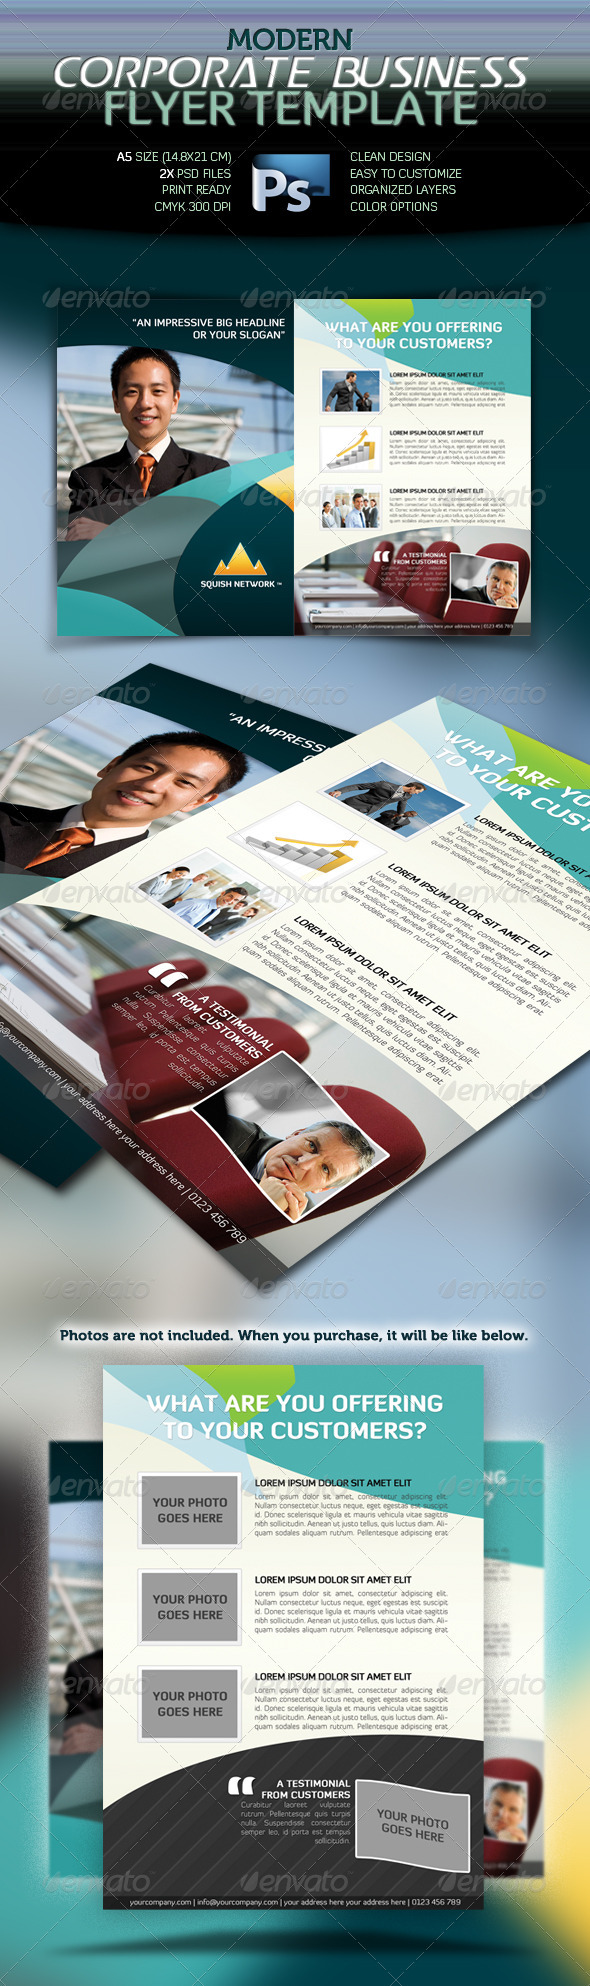 Modern Corporate Business Flyer - Corporate Flyers